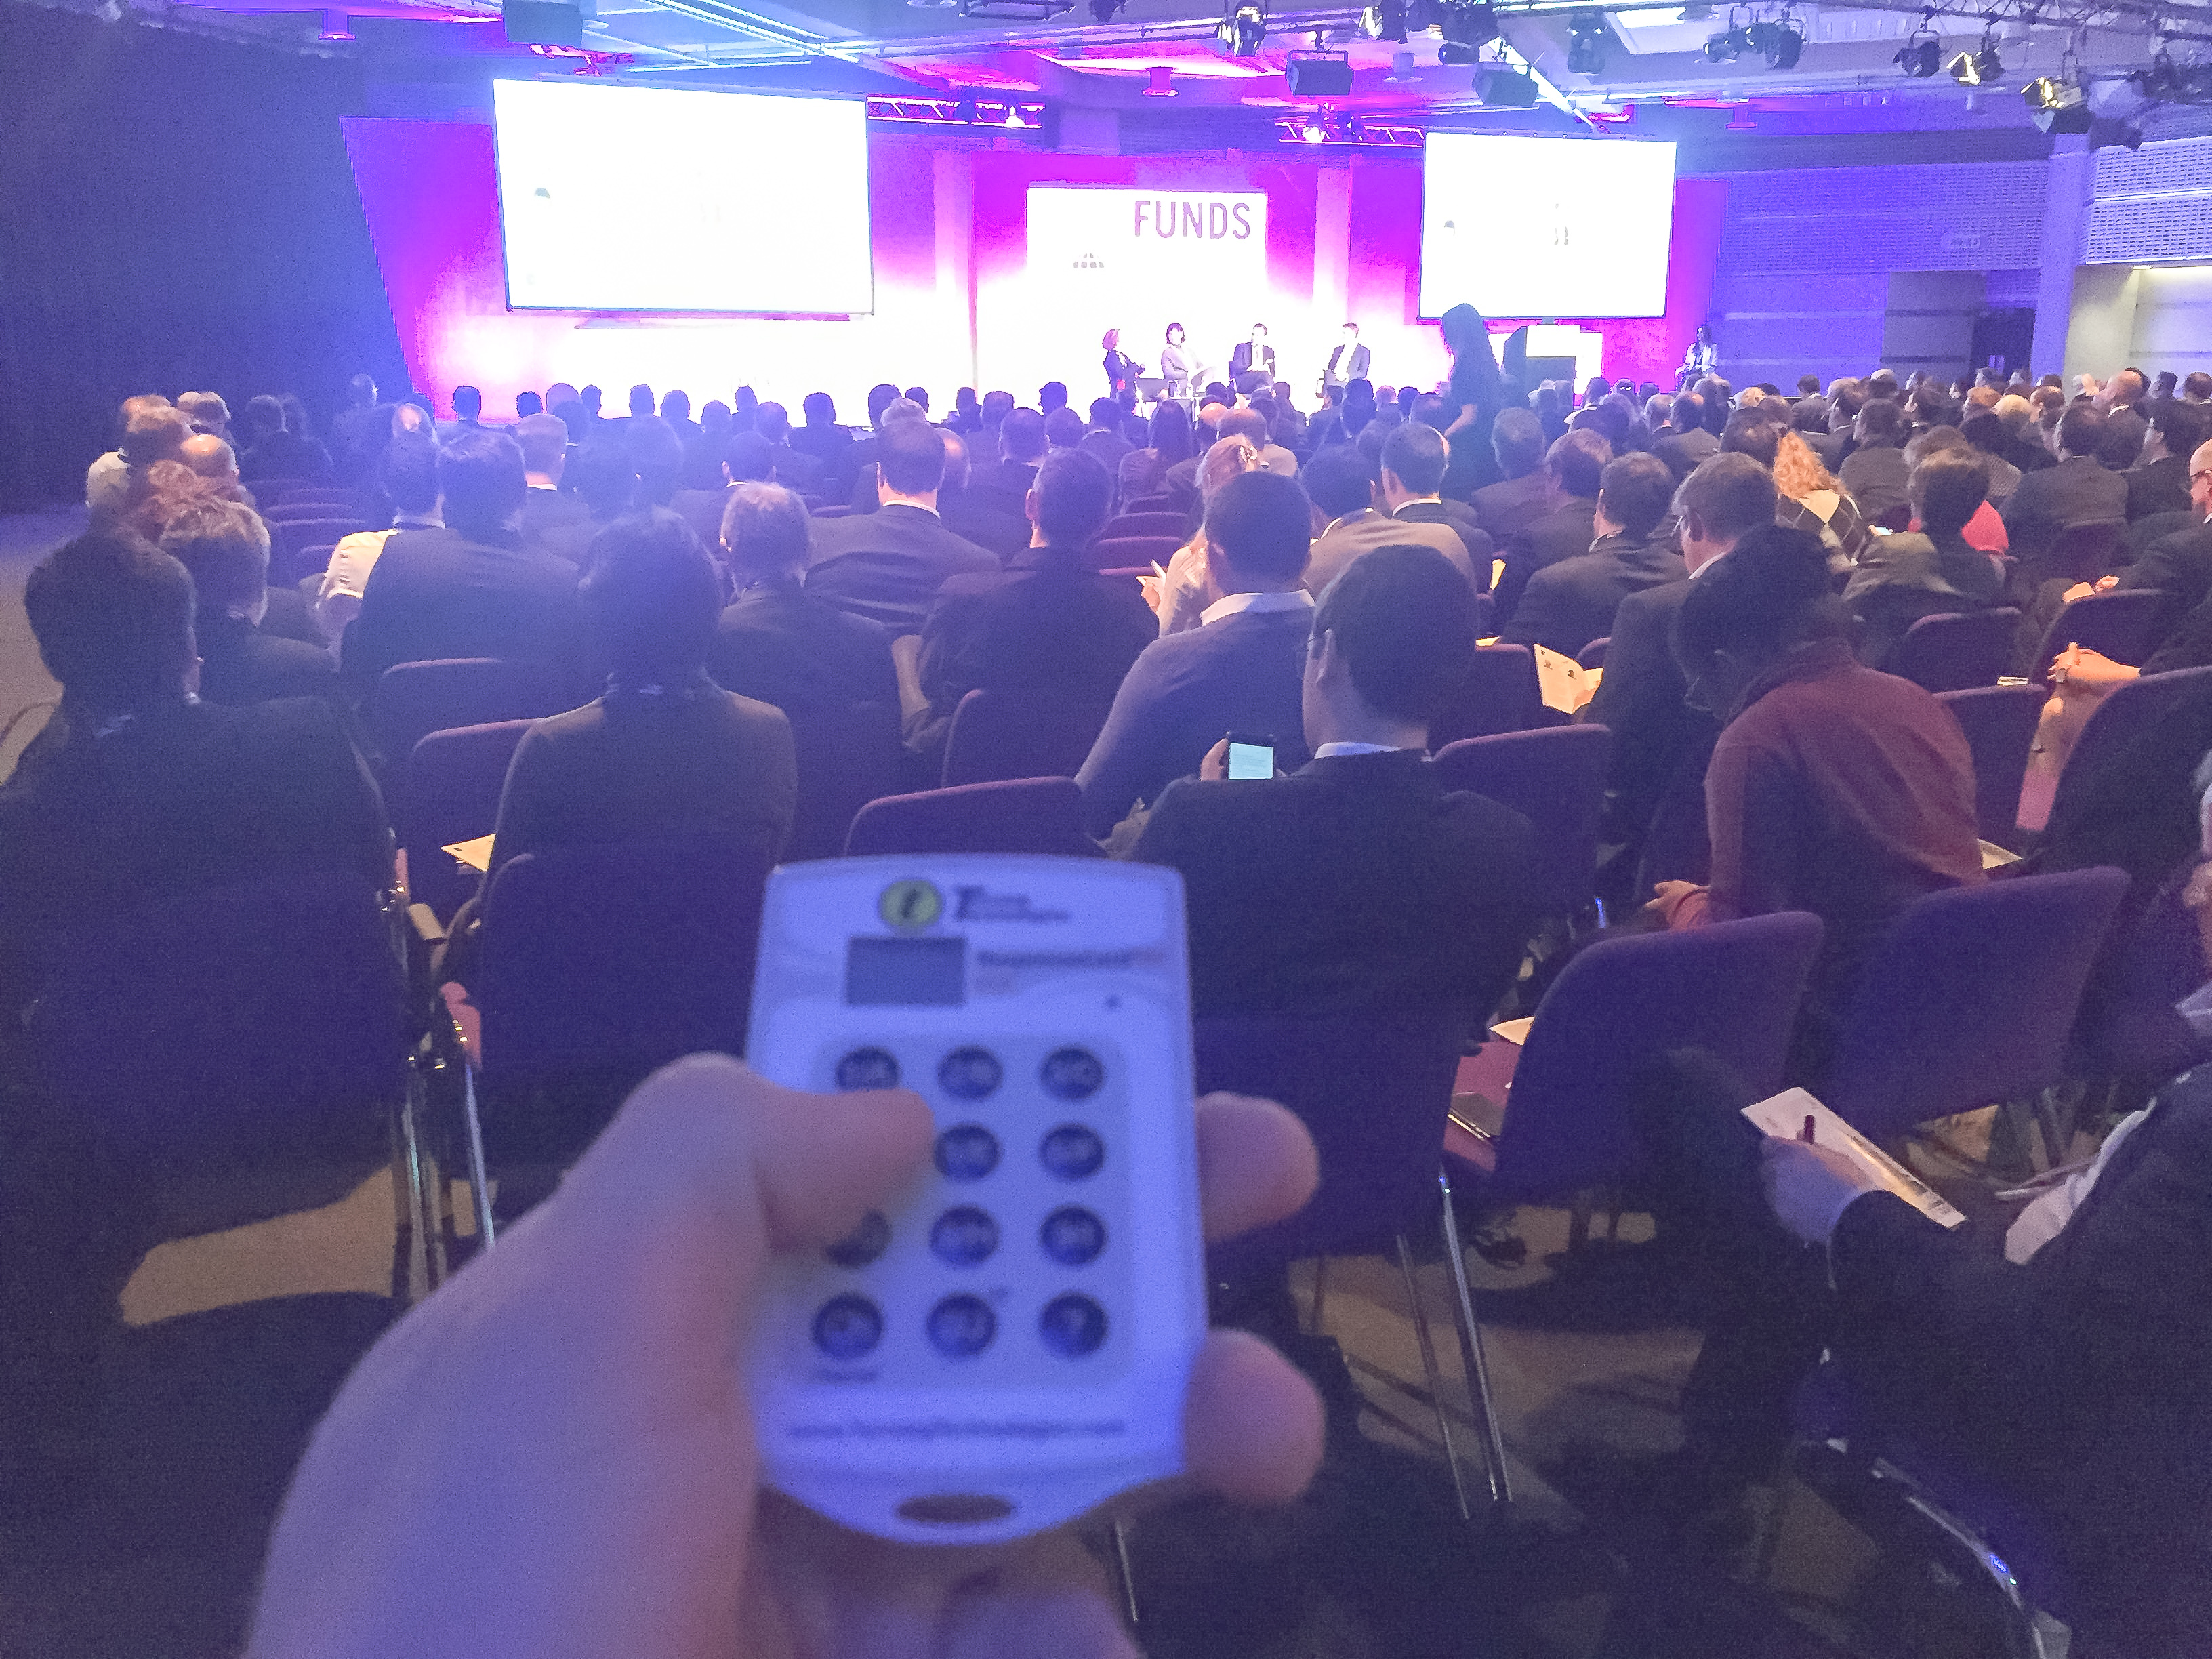 Voting System Turning Point Keypads at Event